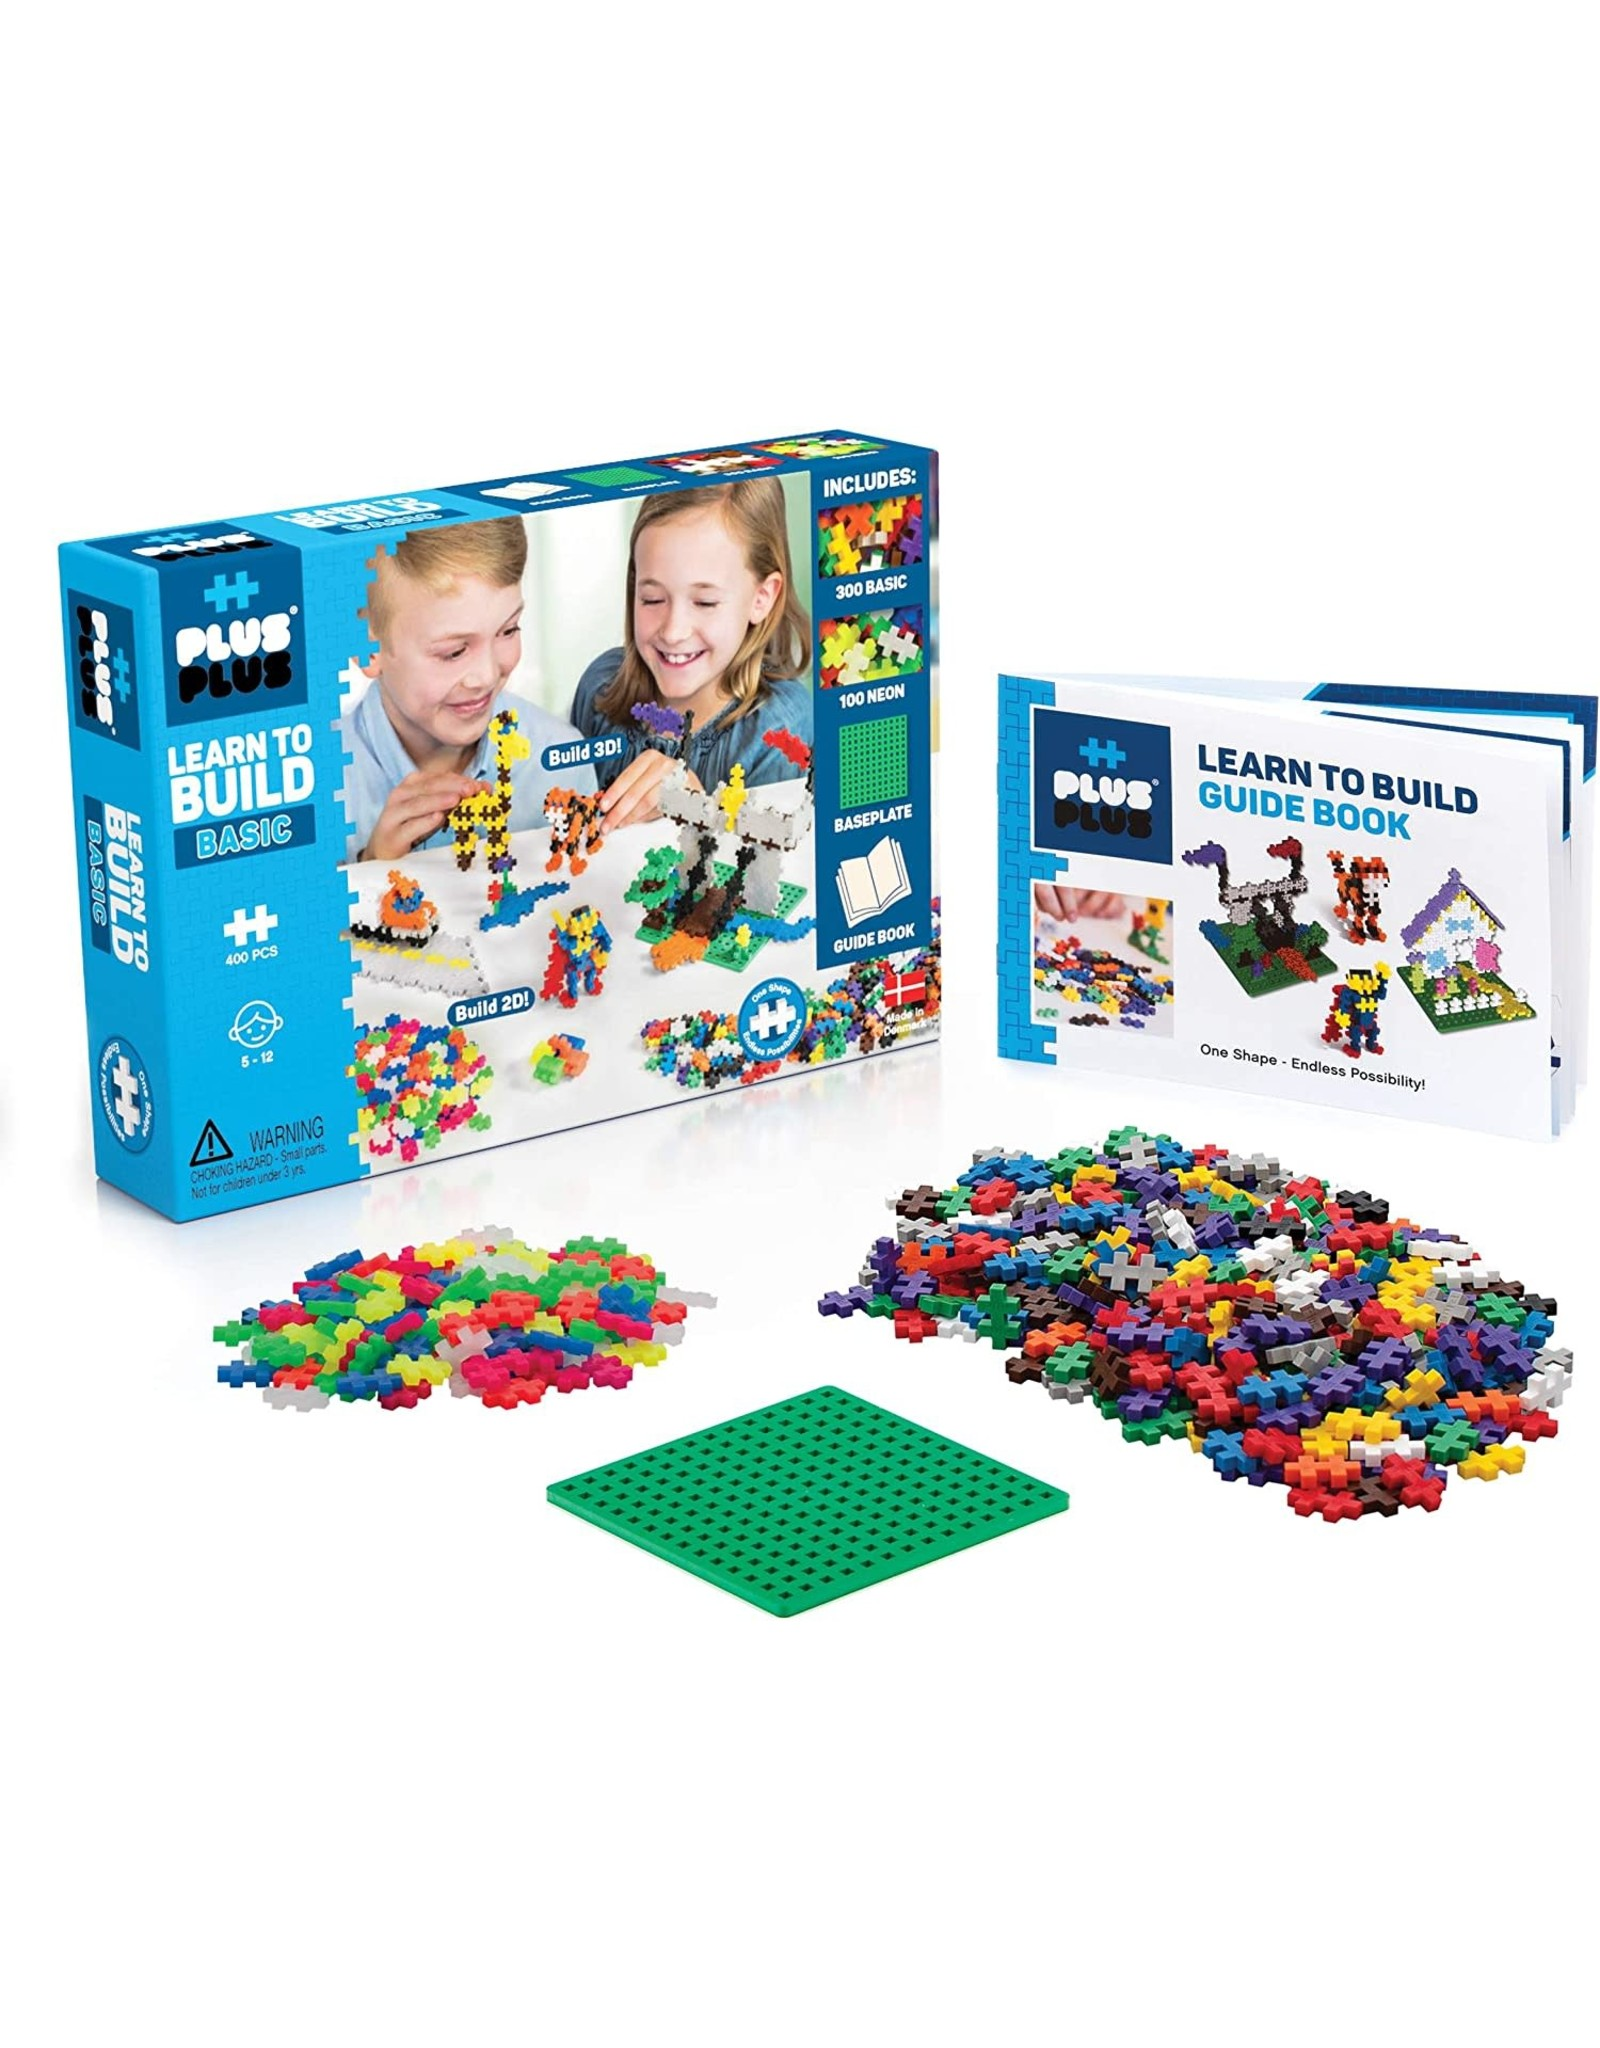 Learn to Build - Basic 400 Pc. Plus-Plus